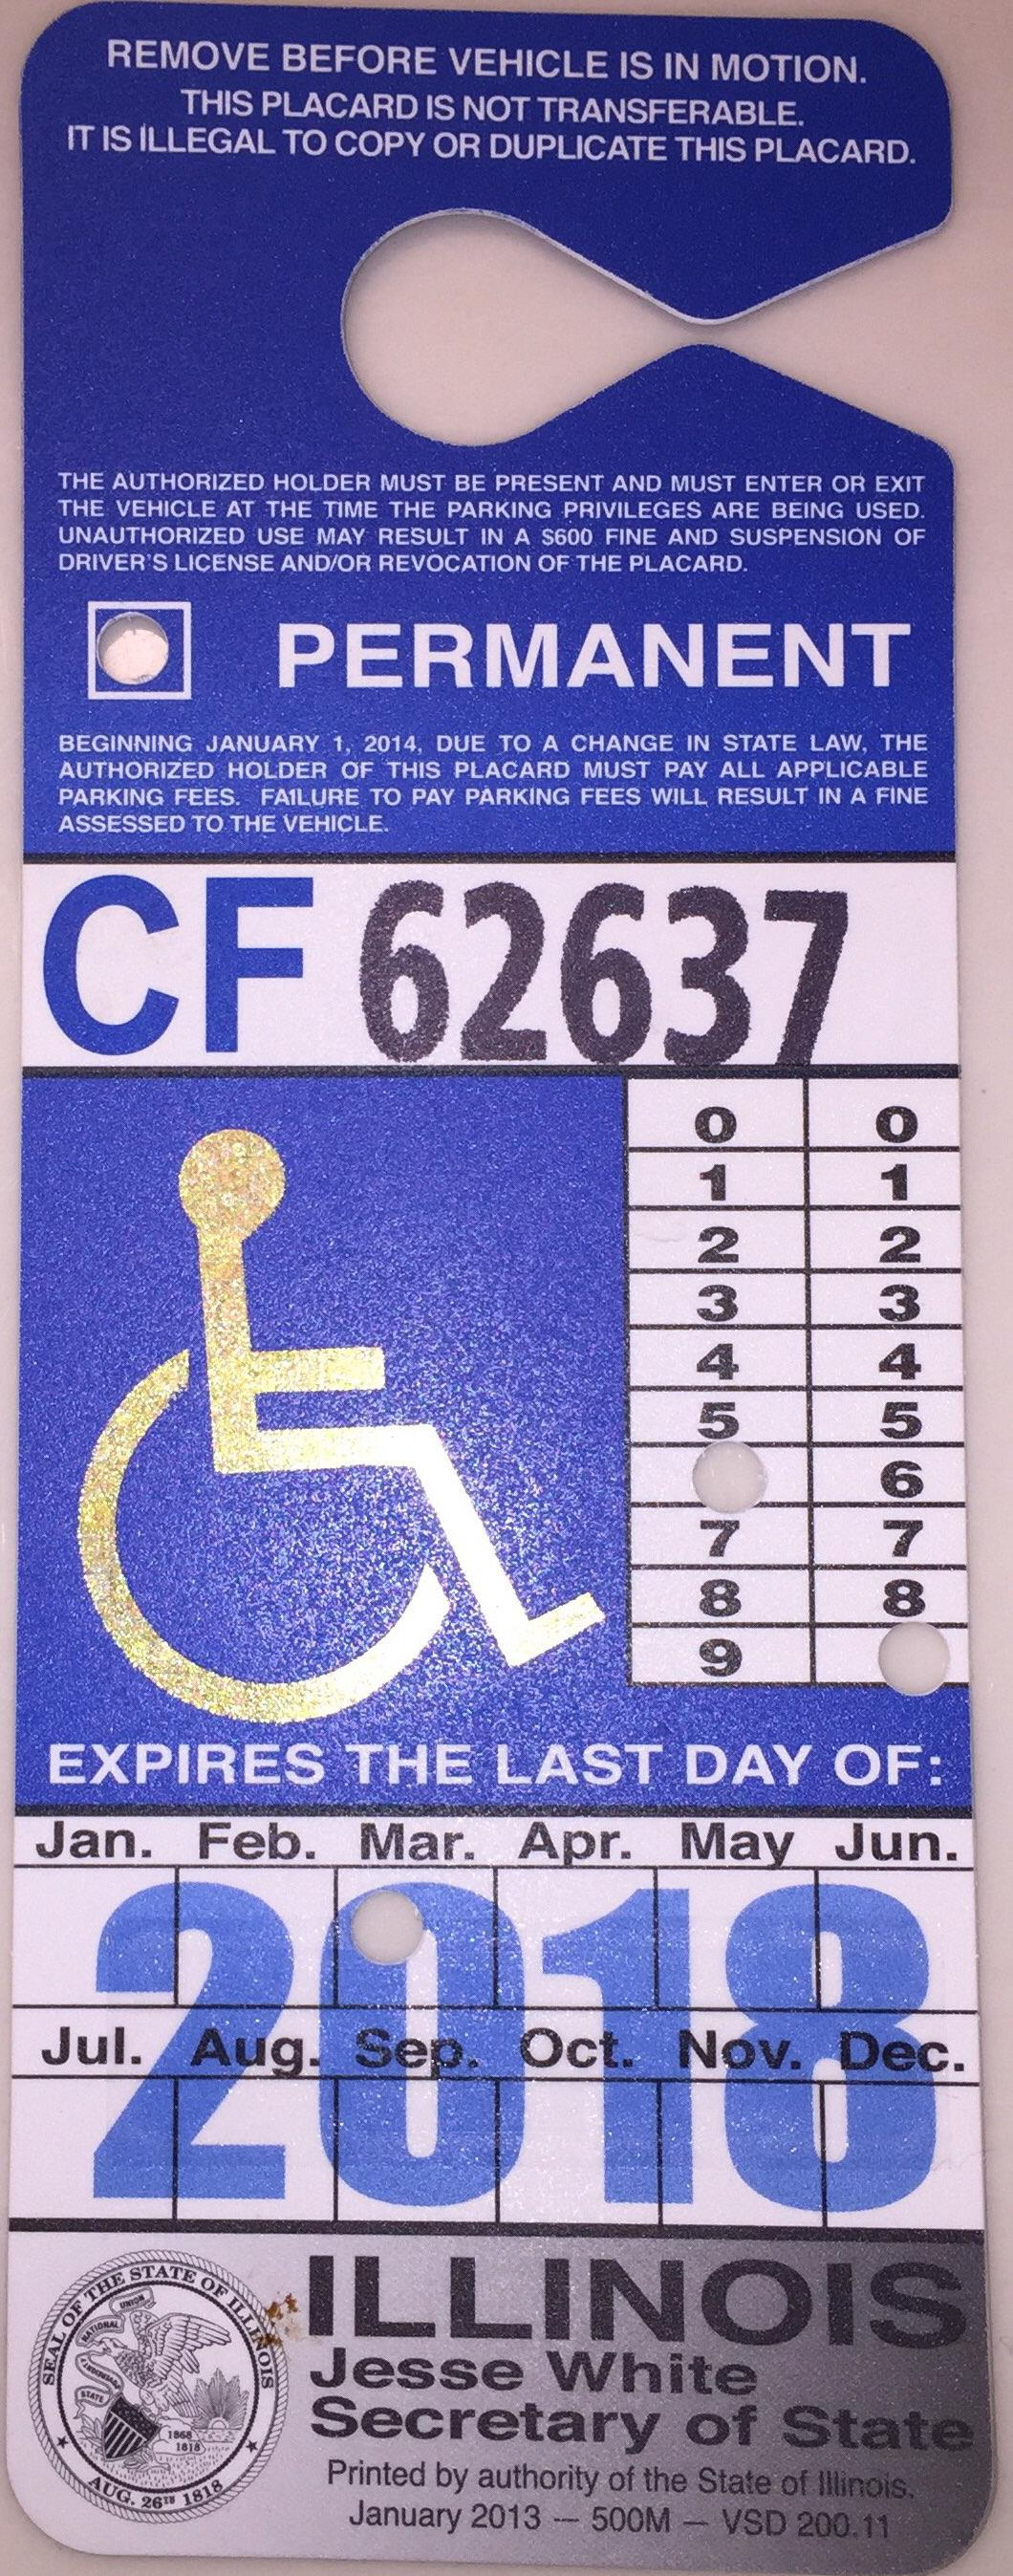 If you ever see illinois handicap placard.   the numbers stamped vertically are the birth year.   It will help you sometimes if you see some asshole parking out of state and using granny's placard.  Sample  Also please don't think because they have no wheel chair they don't need the parking space.  I'm handicap and walk normally fine but I have pop-outs where my body freezes in place for minutes sometimes.   I had an old lady once yell at me and call the cops when she saw me pulling into a handicap spot.  She even chased me around the store.